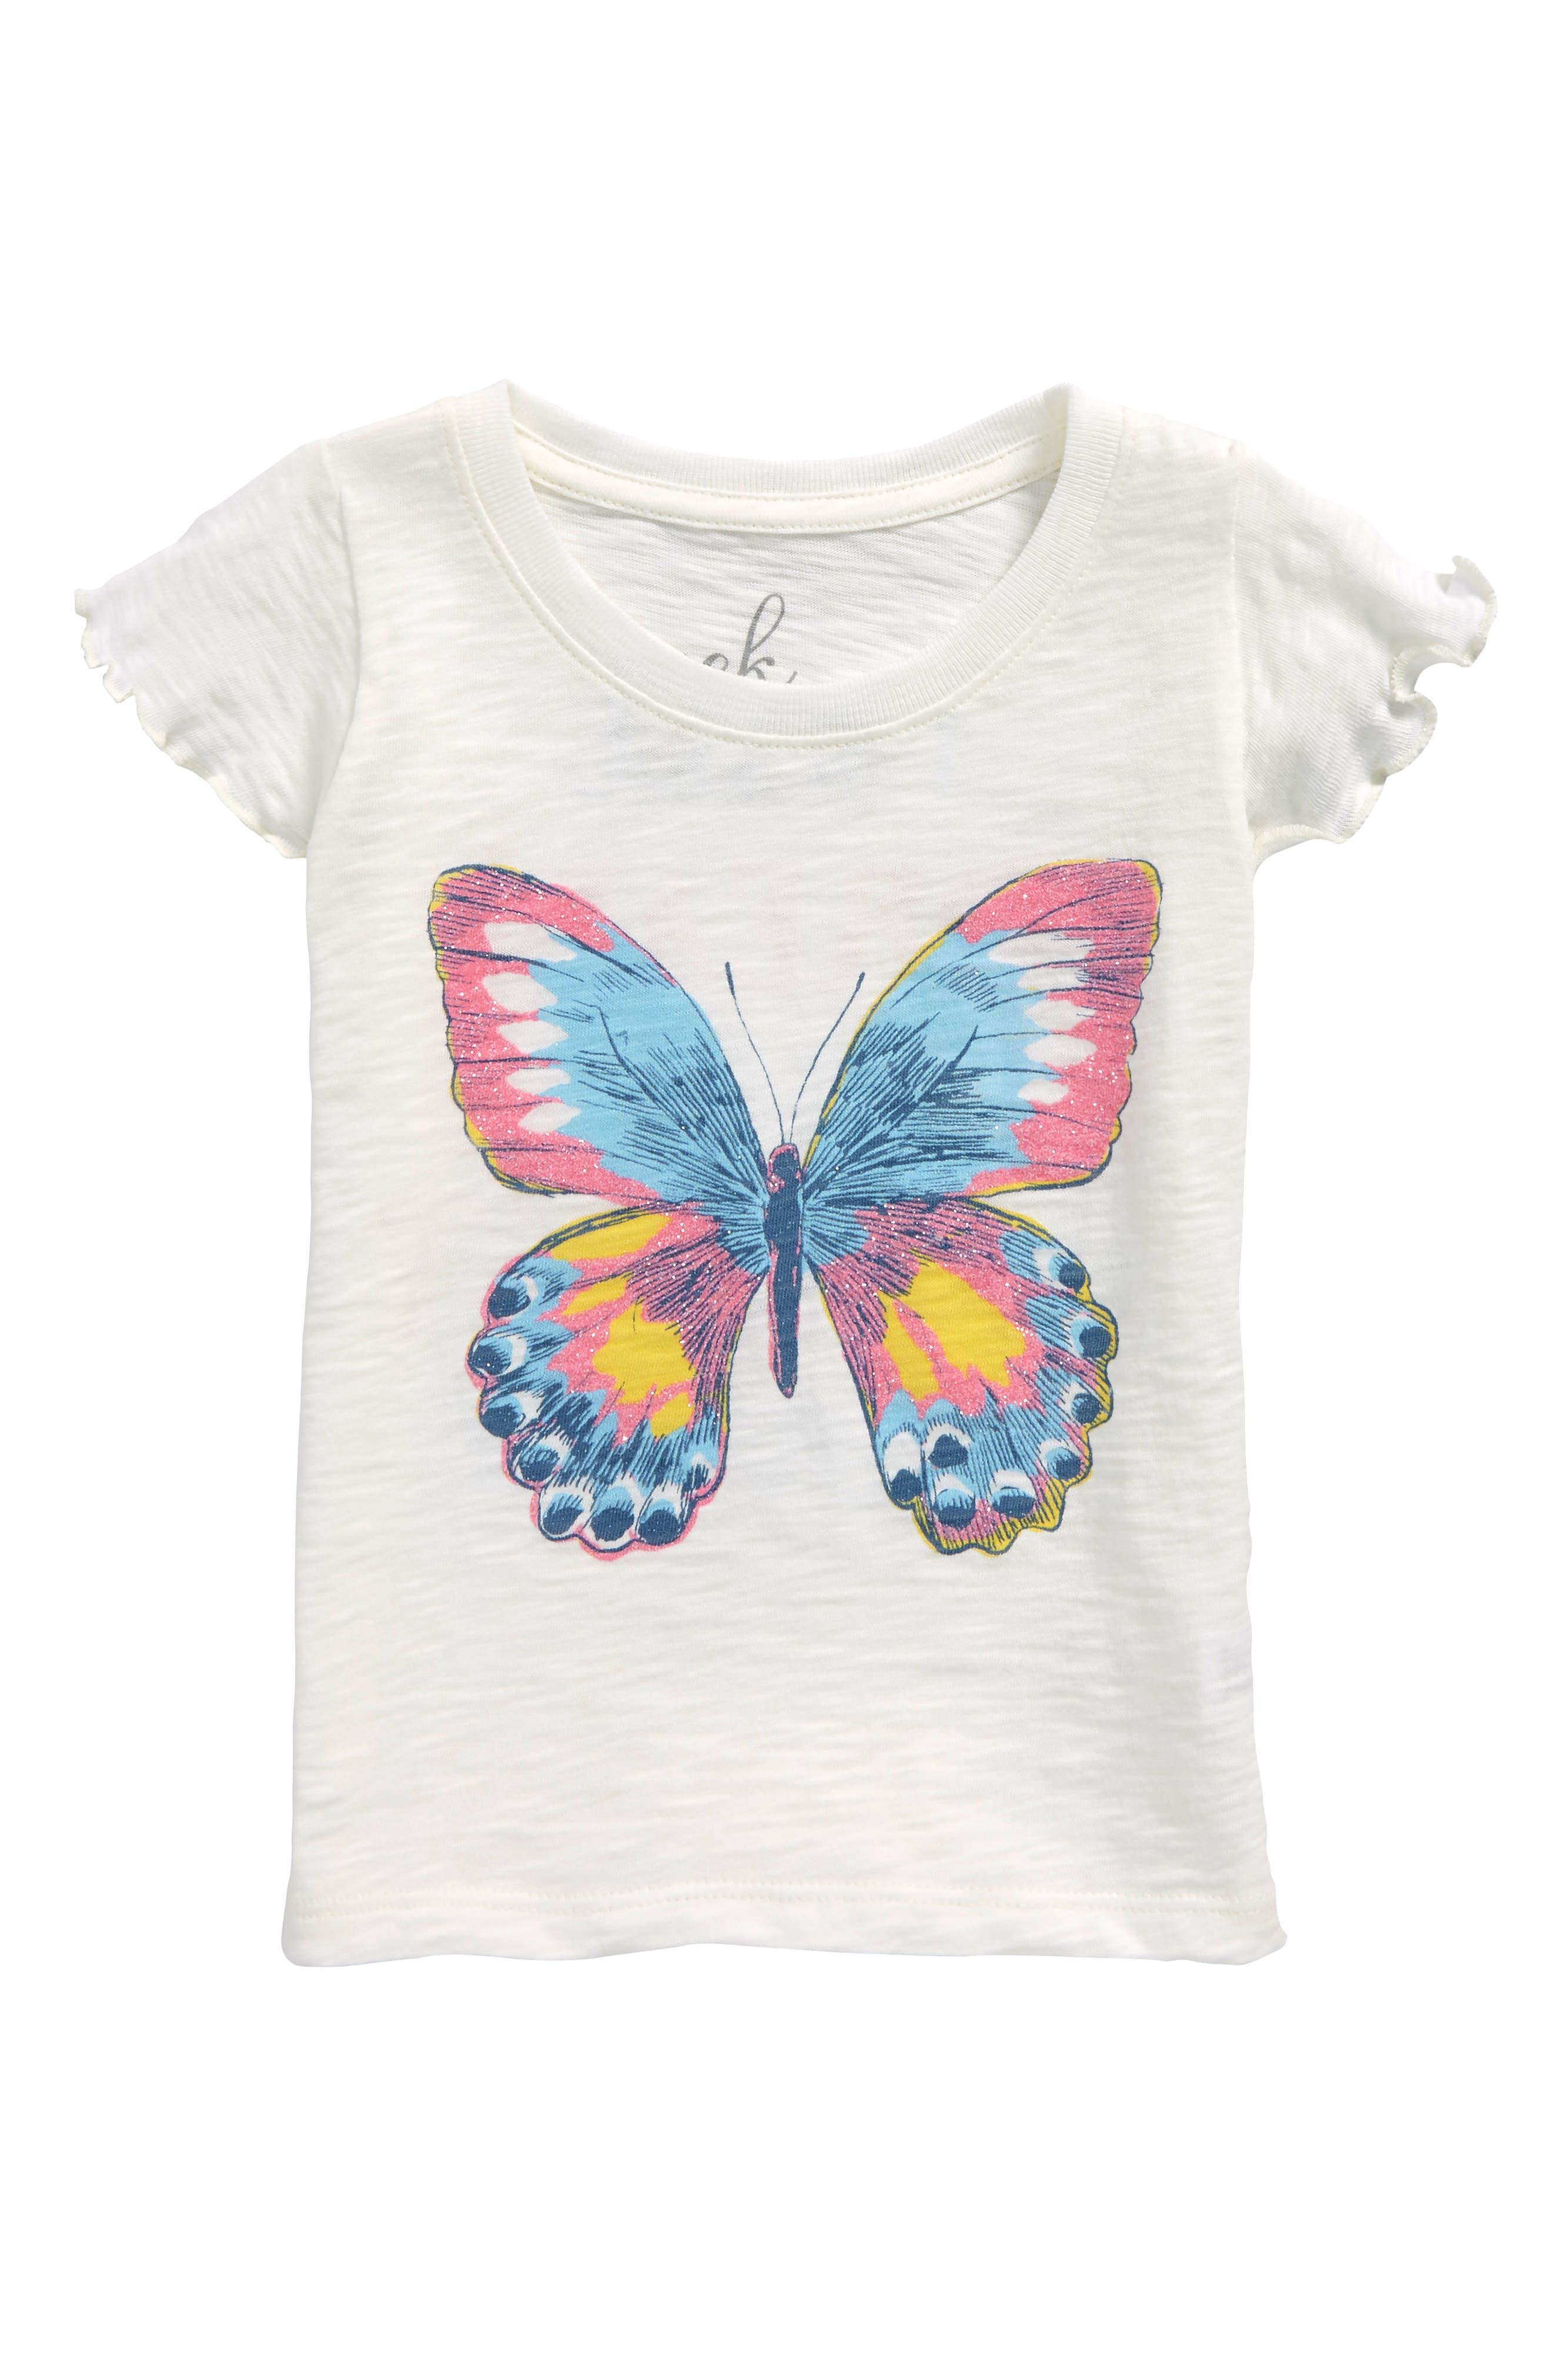 PEEK AREN'T YOU CURIOUS,                             Peek Butterfly Graphic Tee,                             Main thumbnail 1, color,                             100